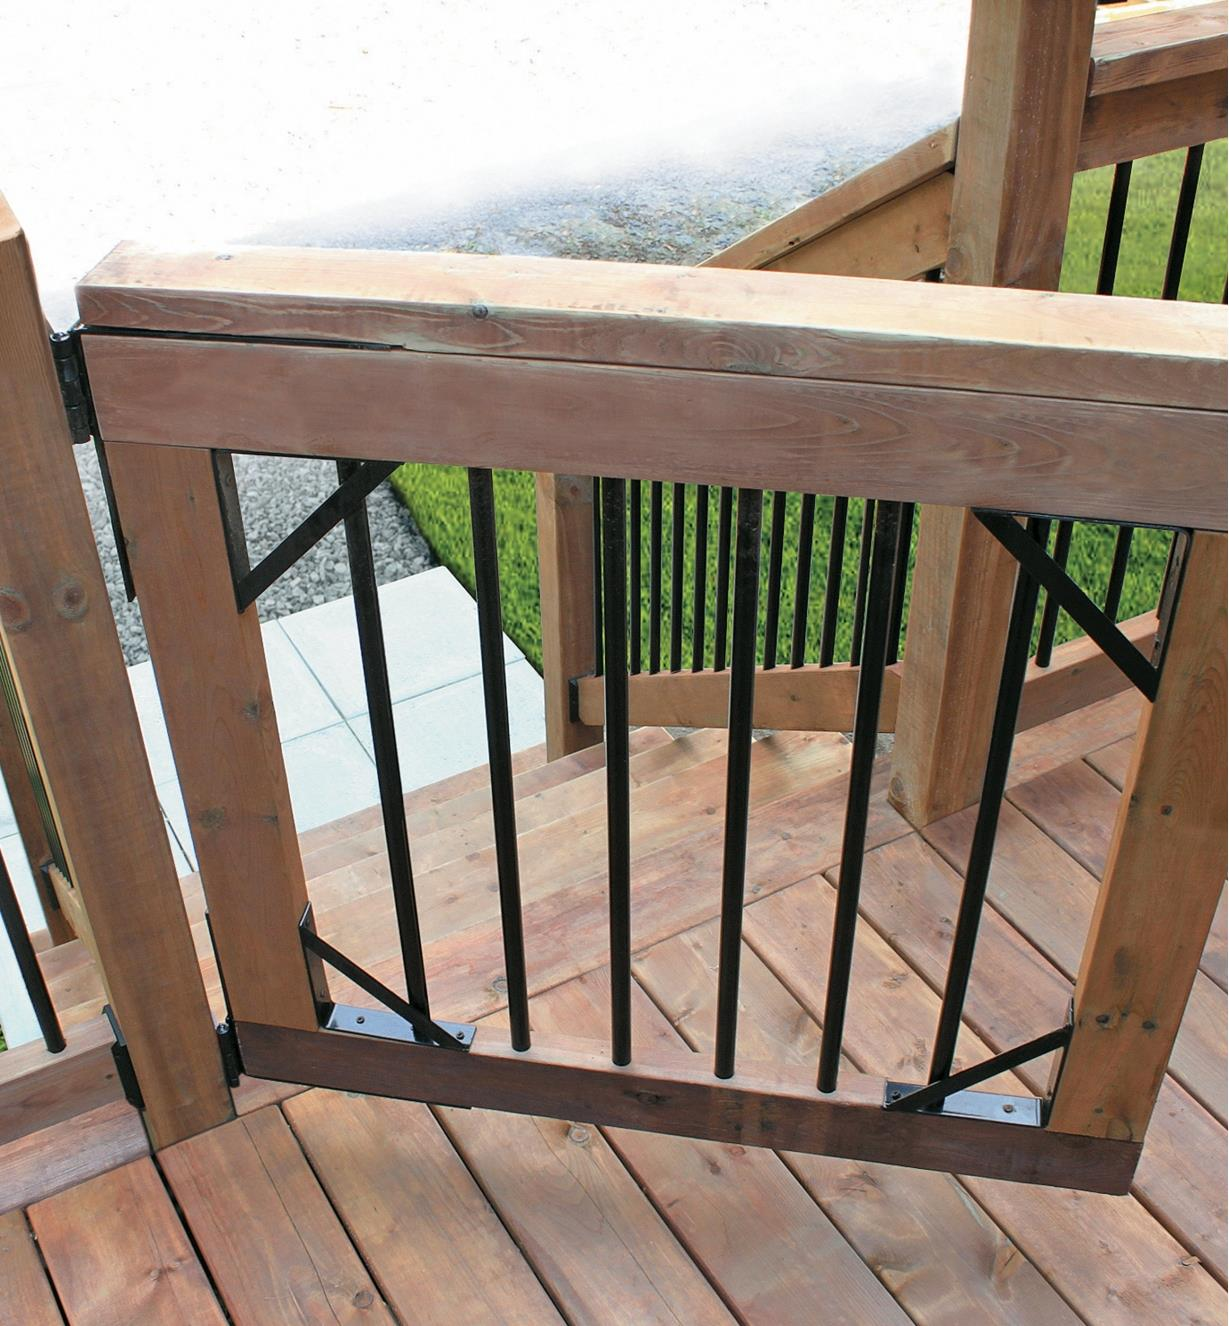 Deck gate made with Heavy-Duty Gate Bracket Kit